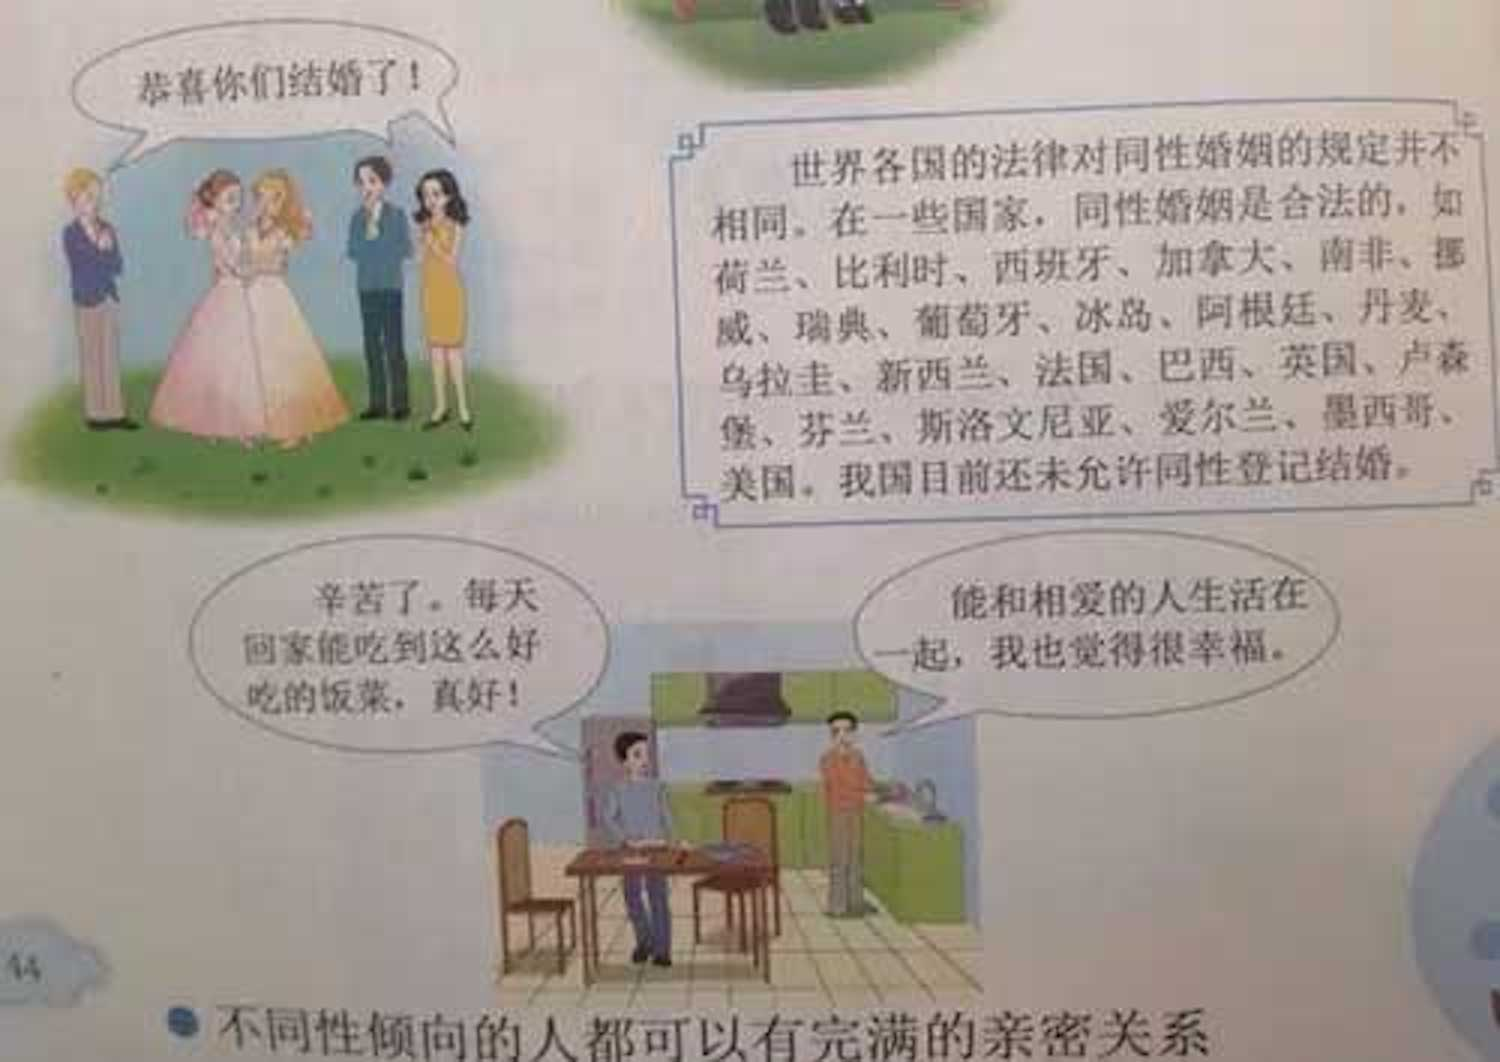 Chinese sex education booklet published in March 2017